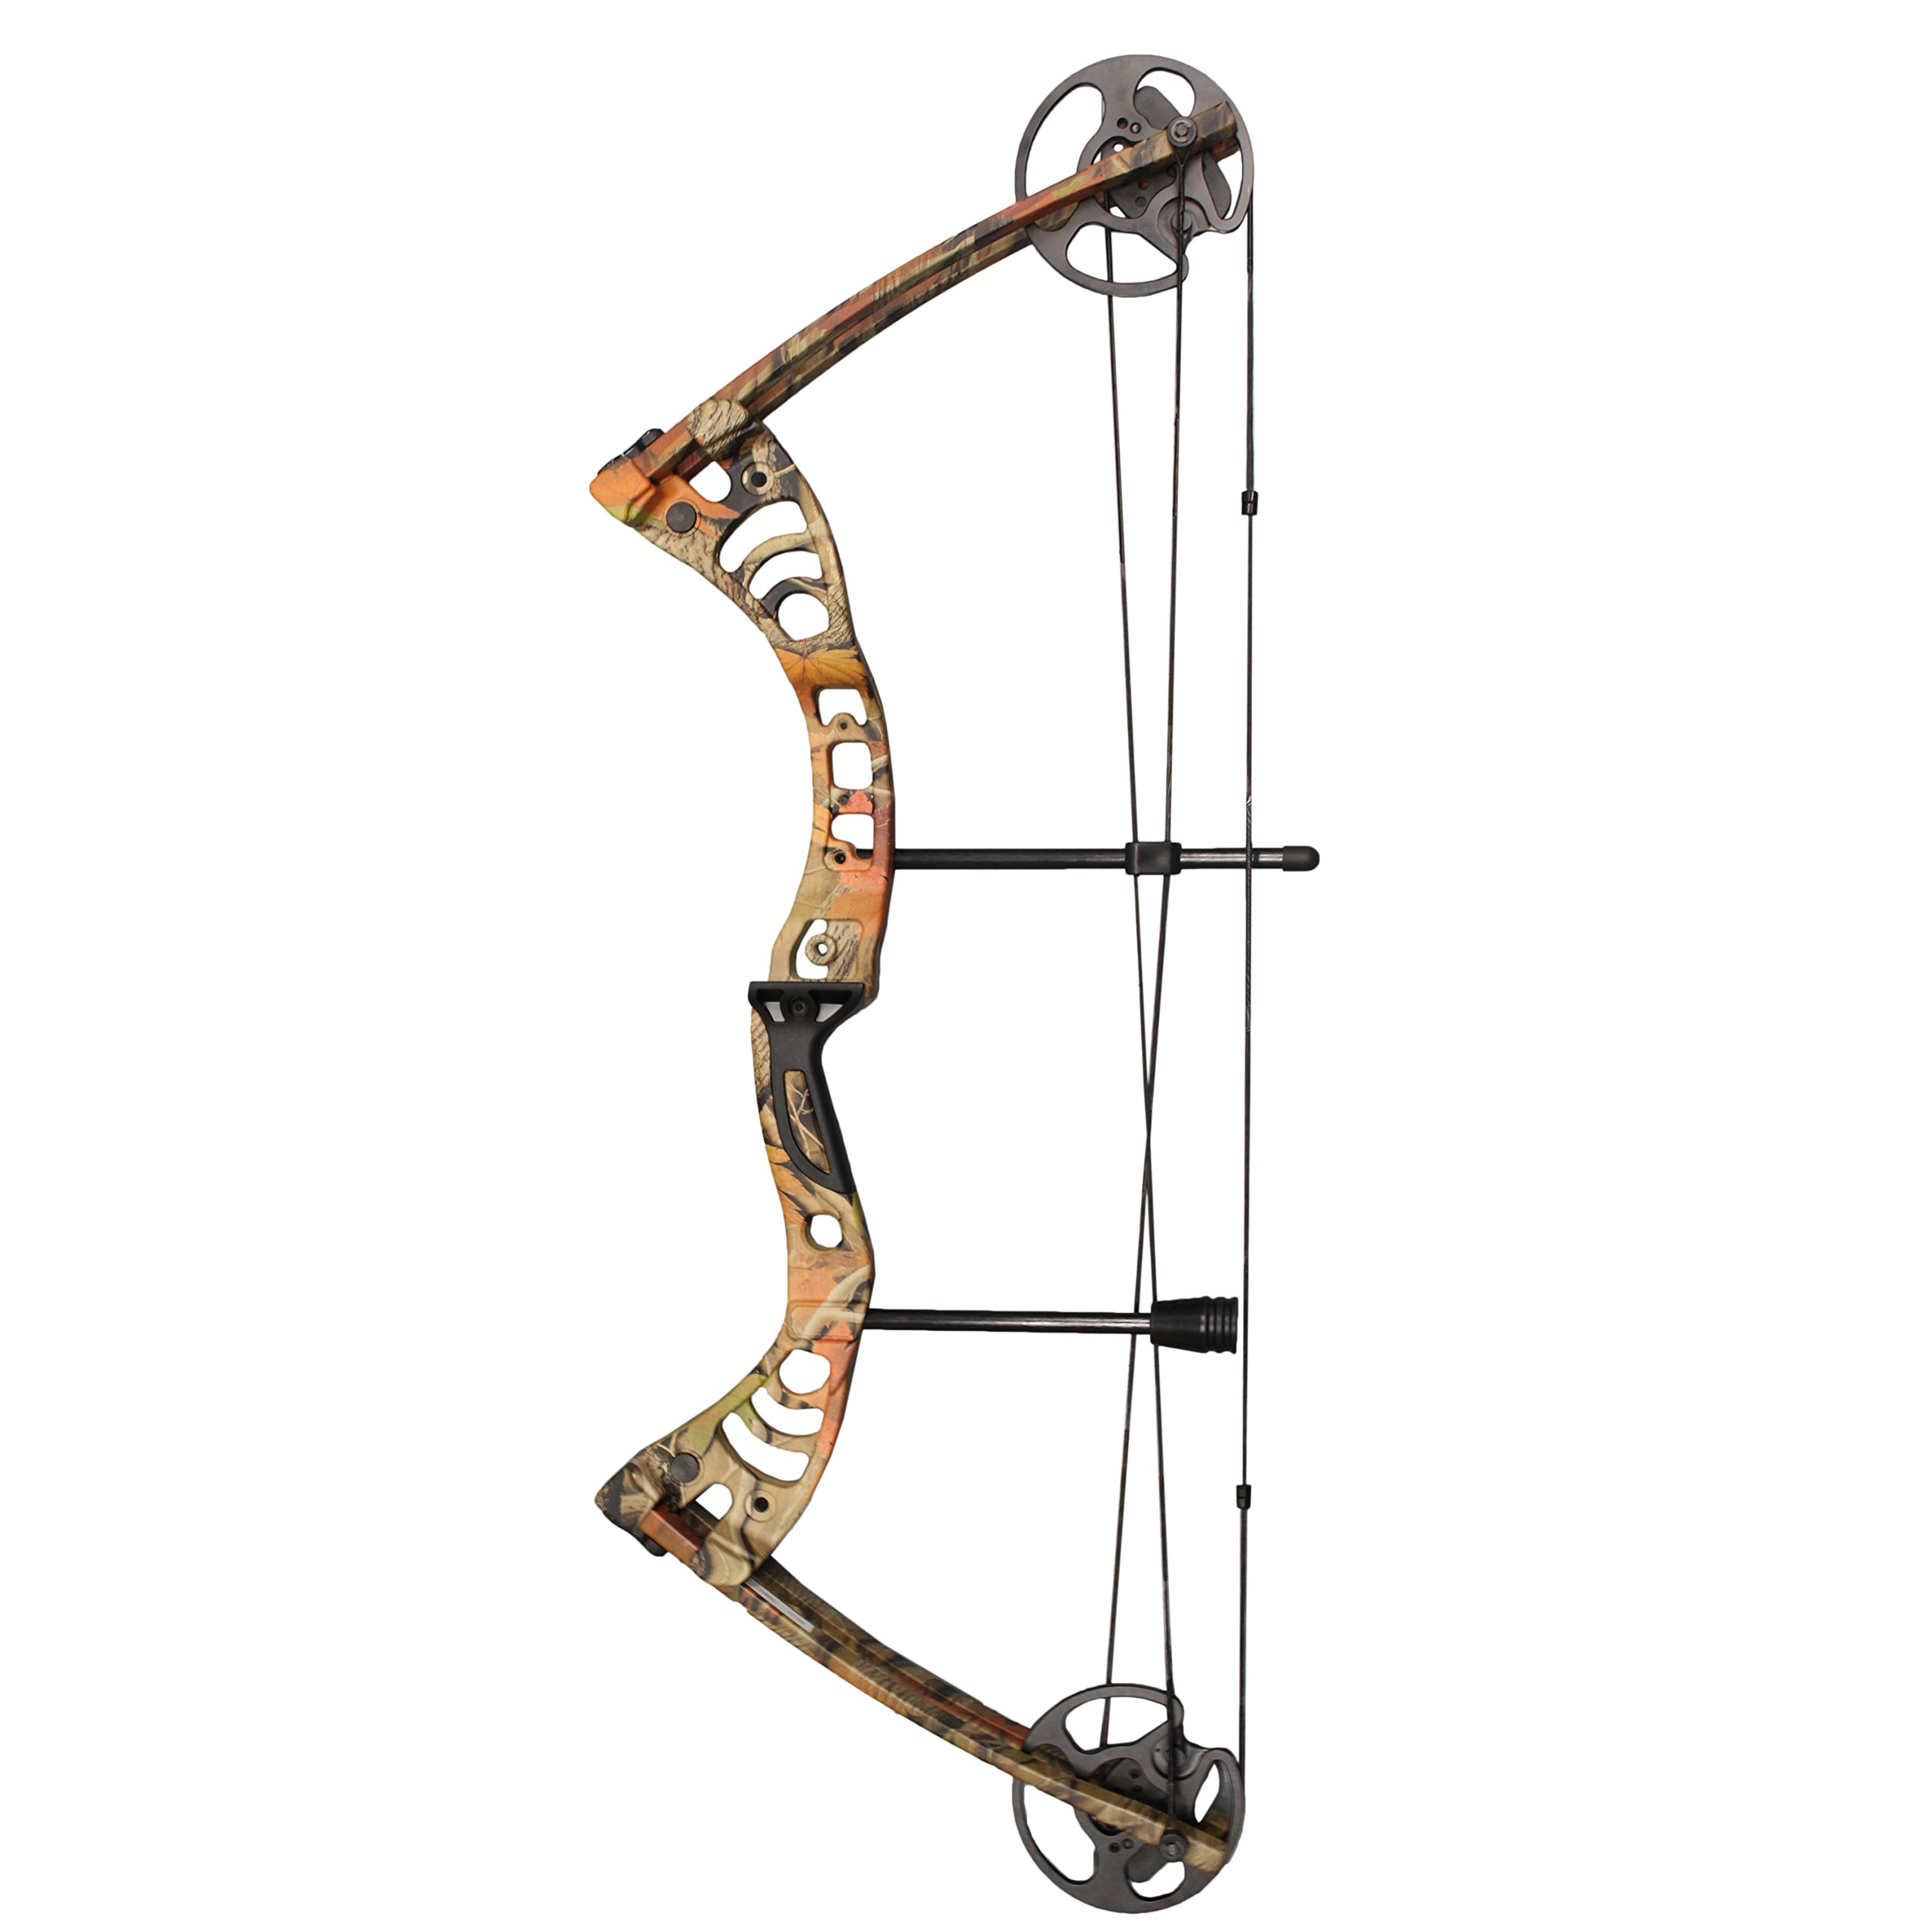 Southland Archery Supply SAS Scorpii Compound Bowfishing Bow Kit (AC Camo Cajun Winch Pro Package) by Southland Archery Supply